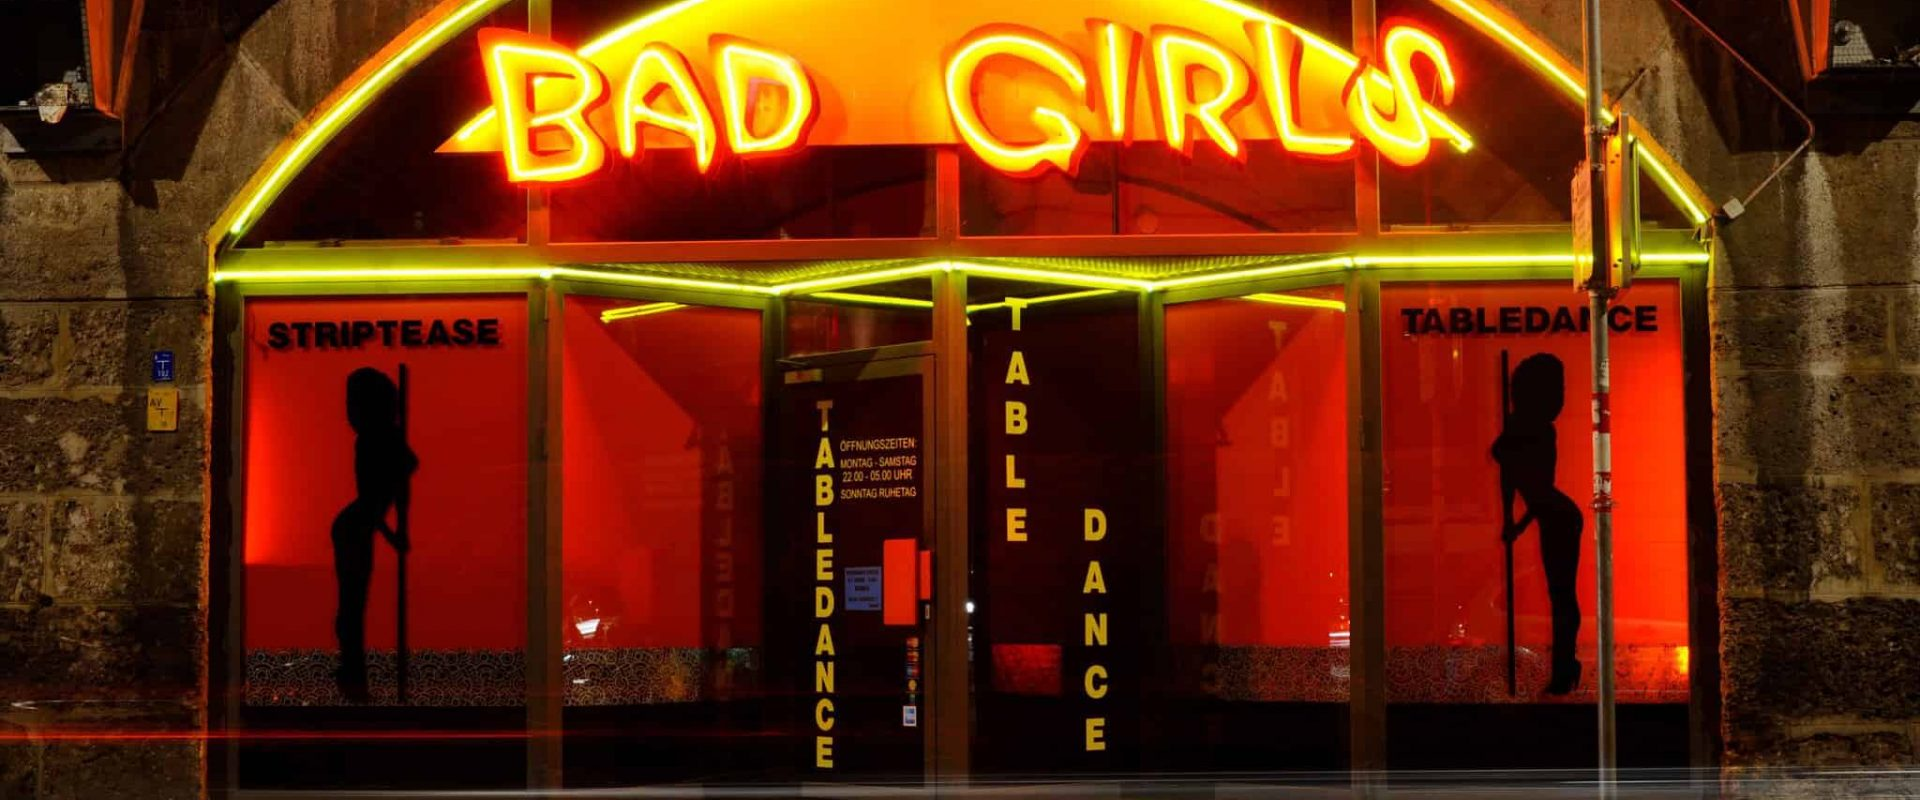 Bad Girls Tabledance